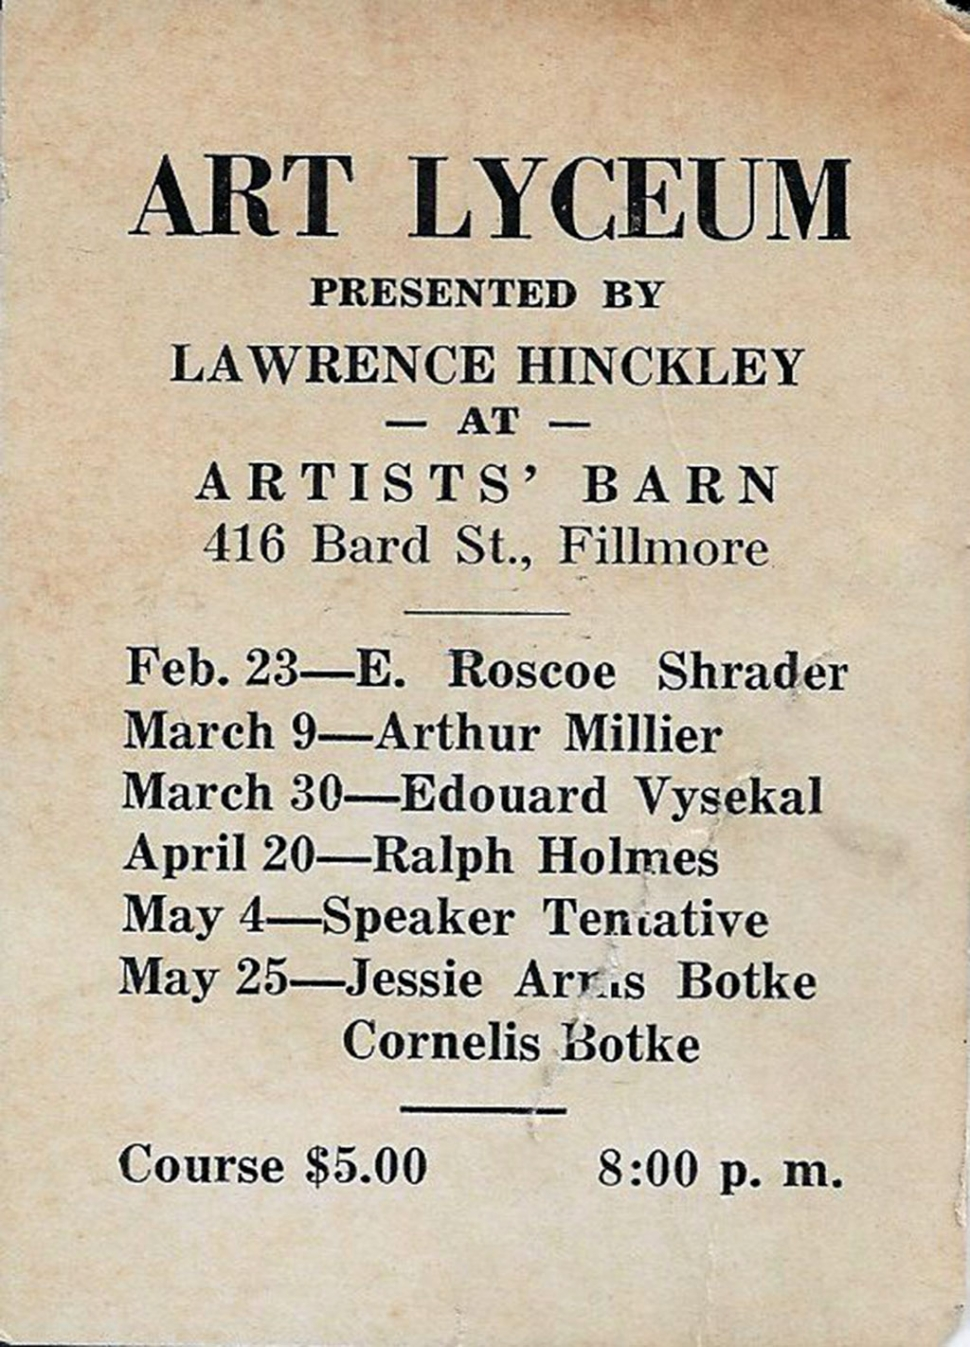 Art Lyceum 1937 Schedule which was a monthly event where speakers would come and speak about art.